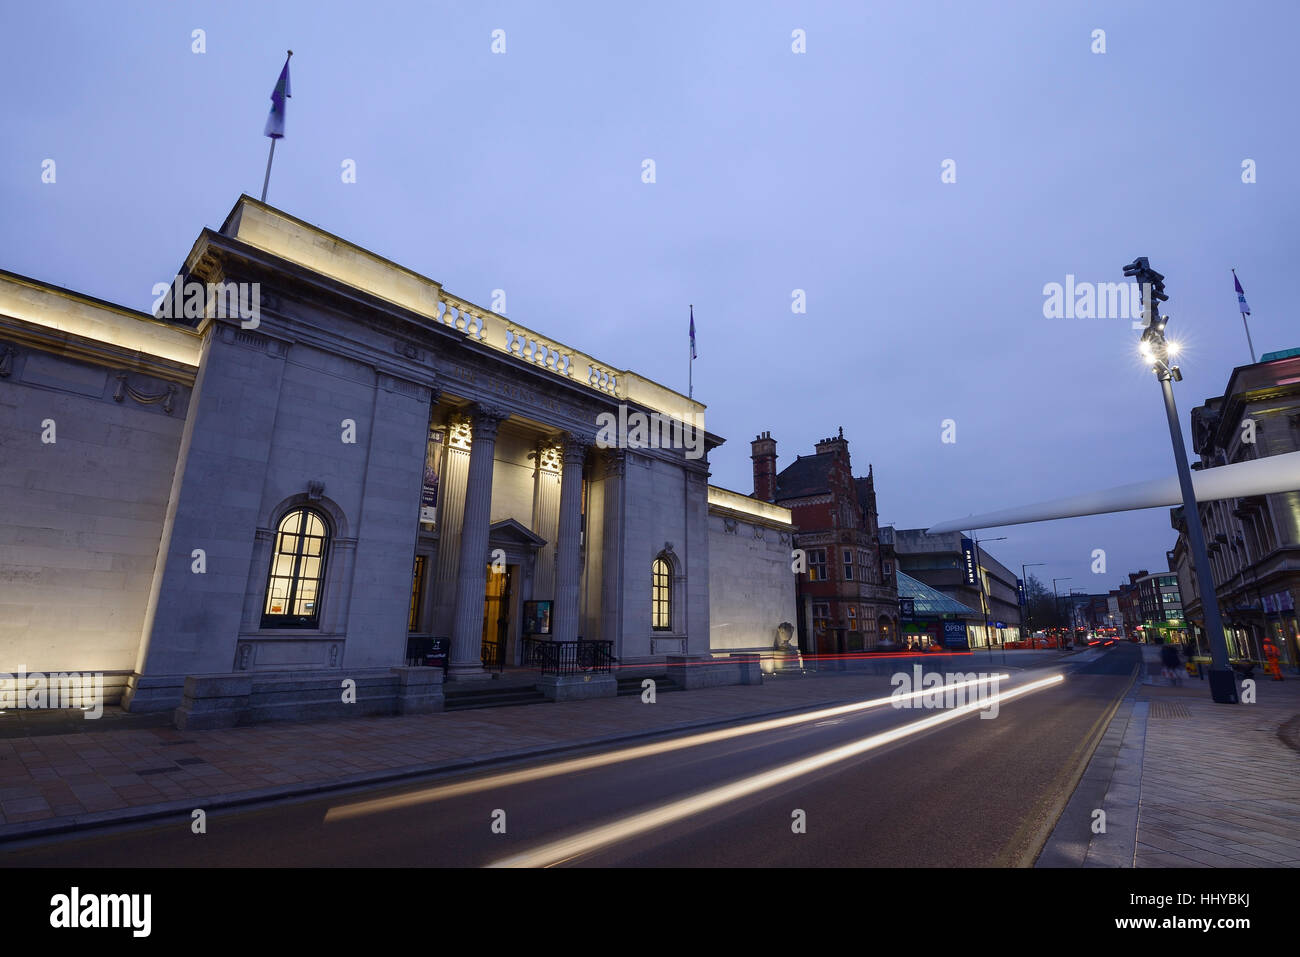 The City Hall building and the Rotor Blade artwork installed for Hull City of Culture 2017 - Stock Image